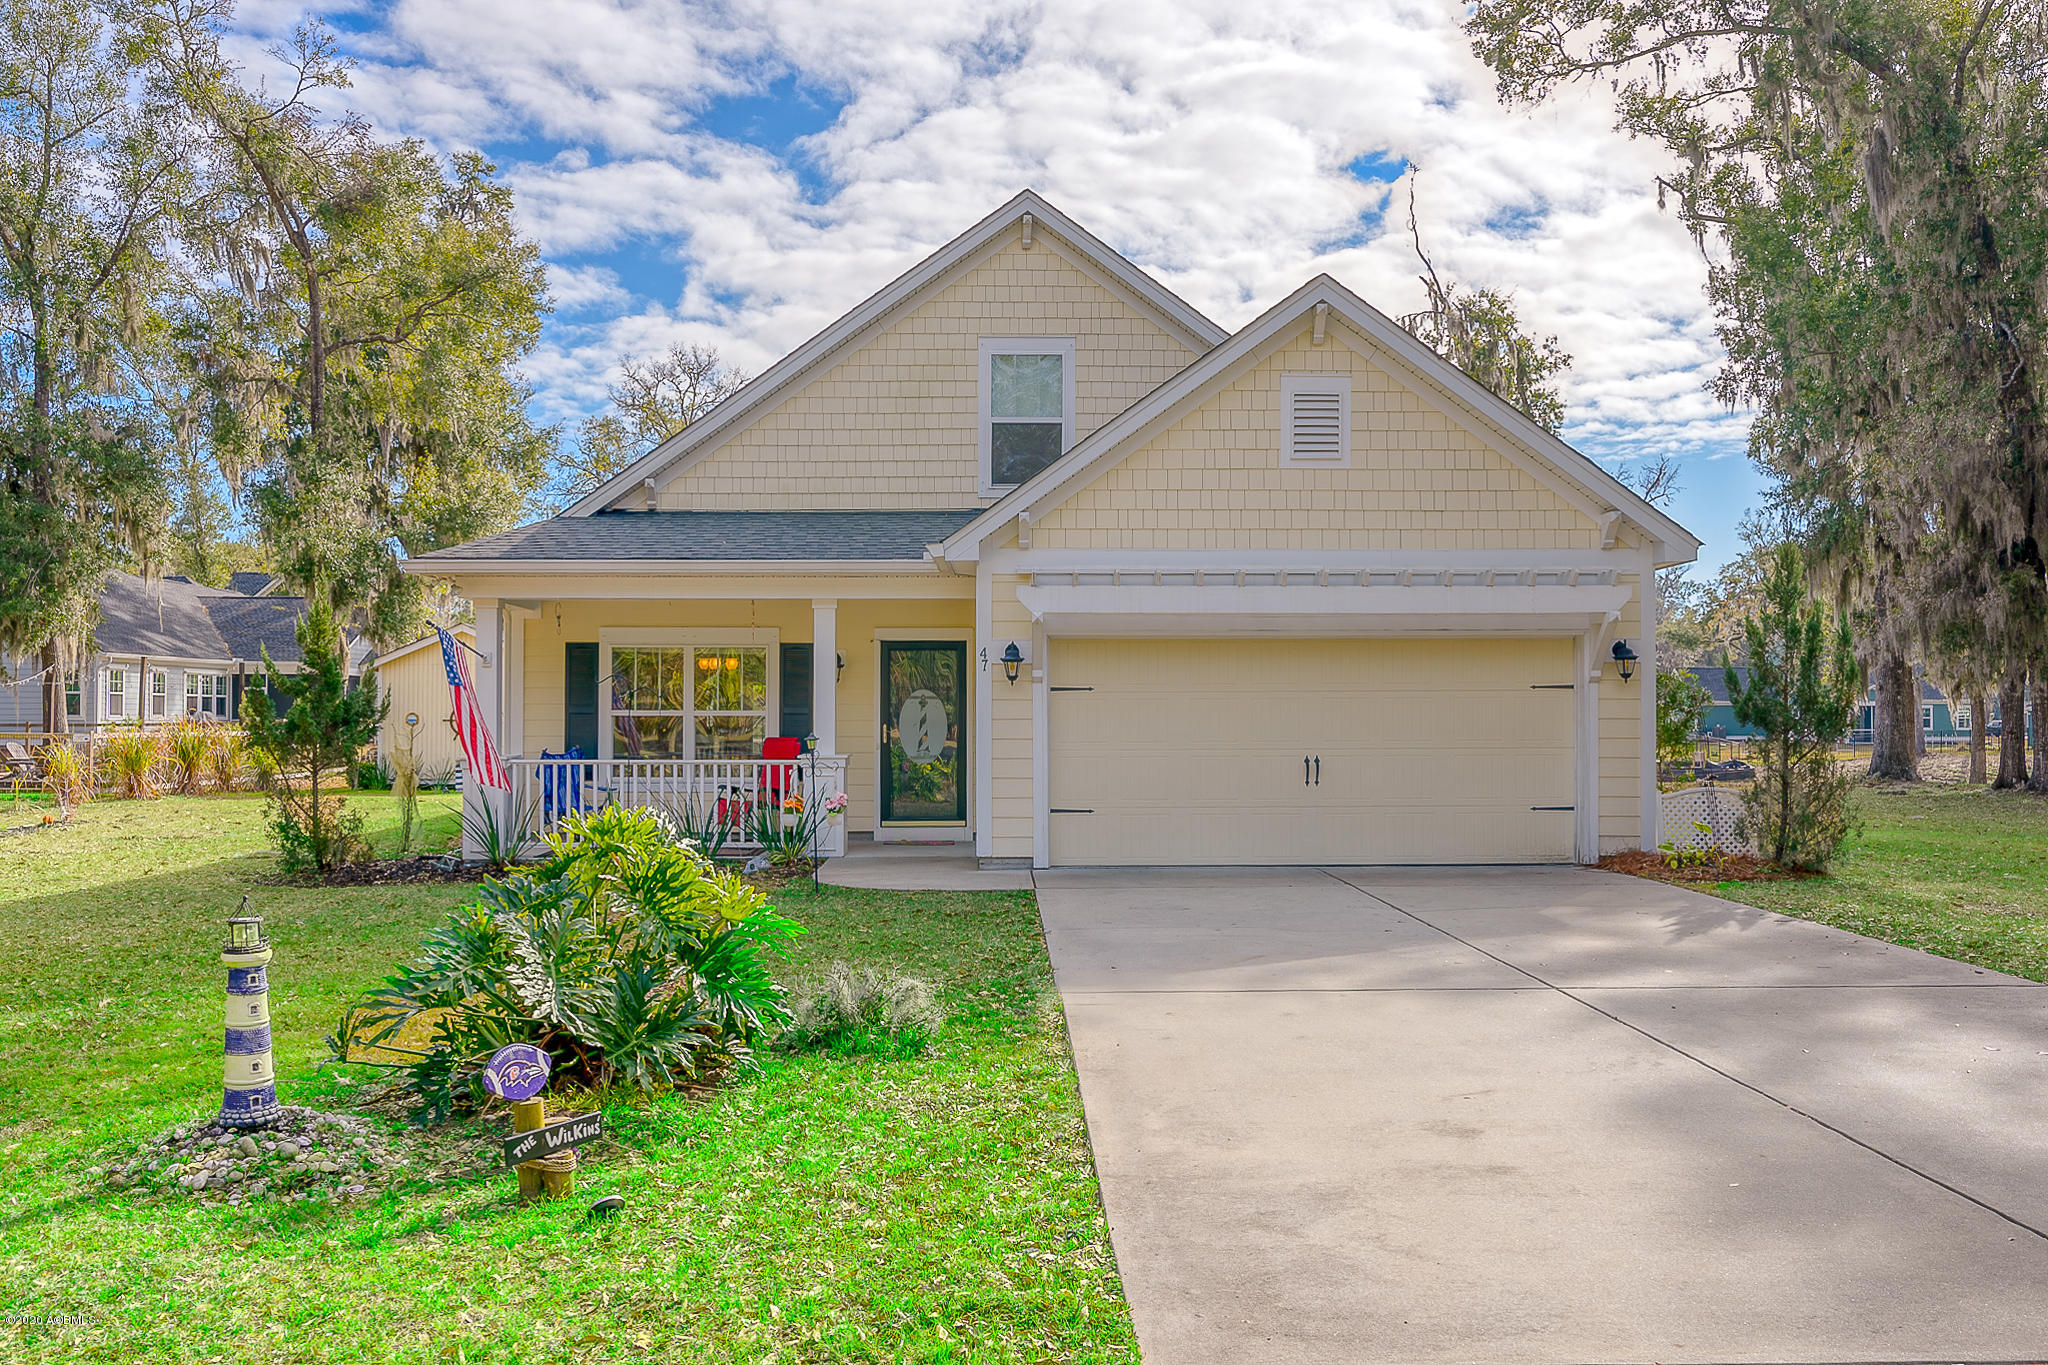 Photo of 47 Gadwall Drive, Beaufort, SC 29907